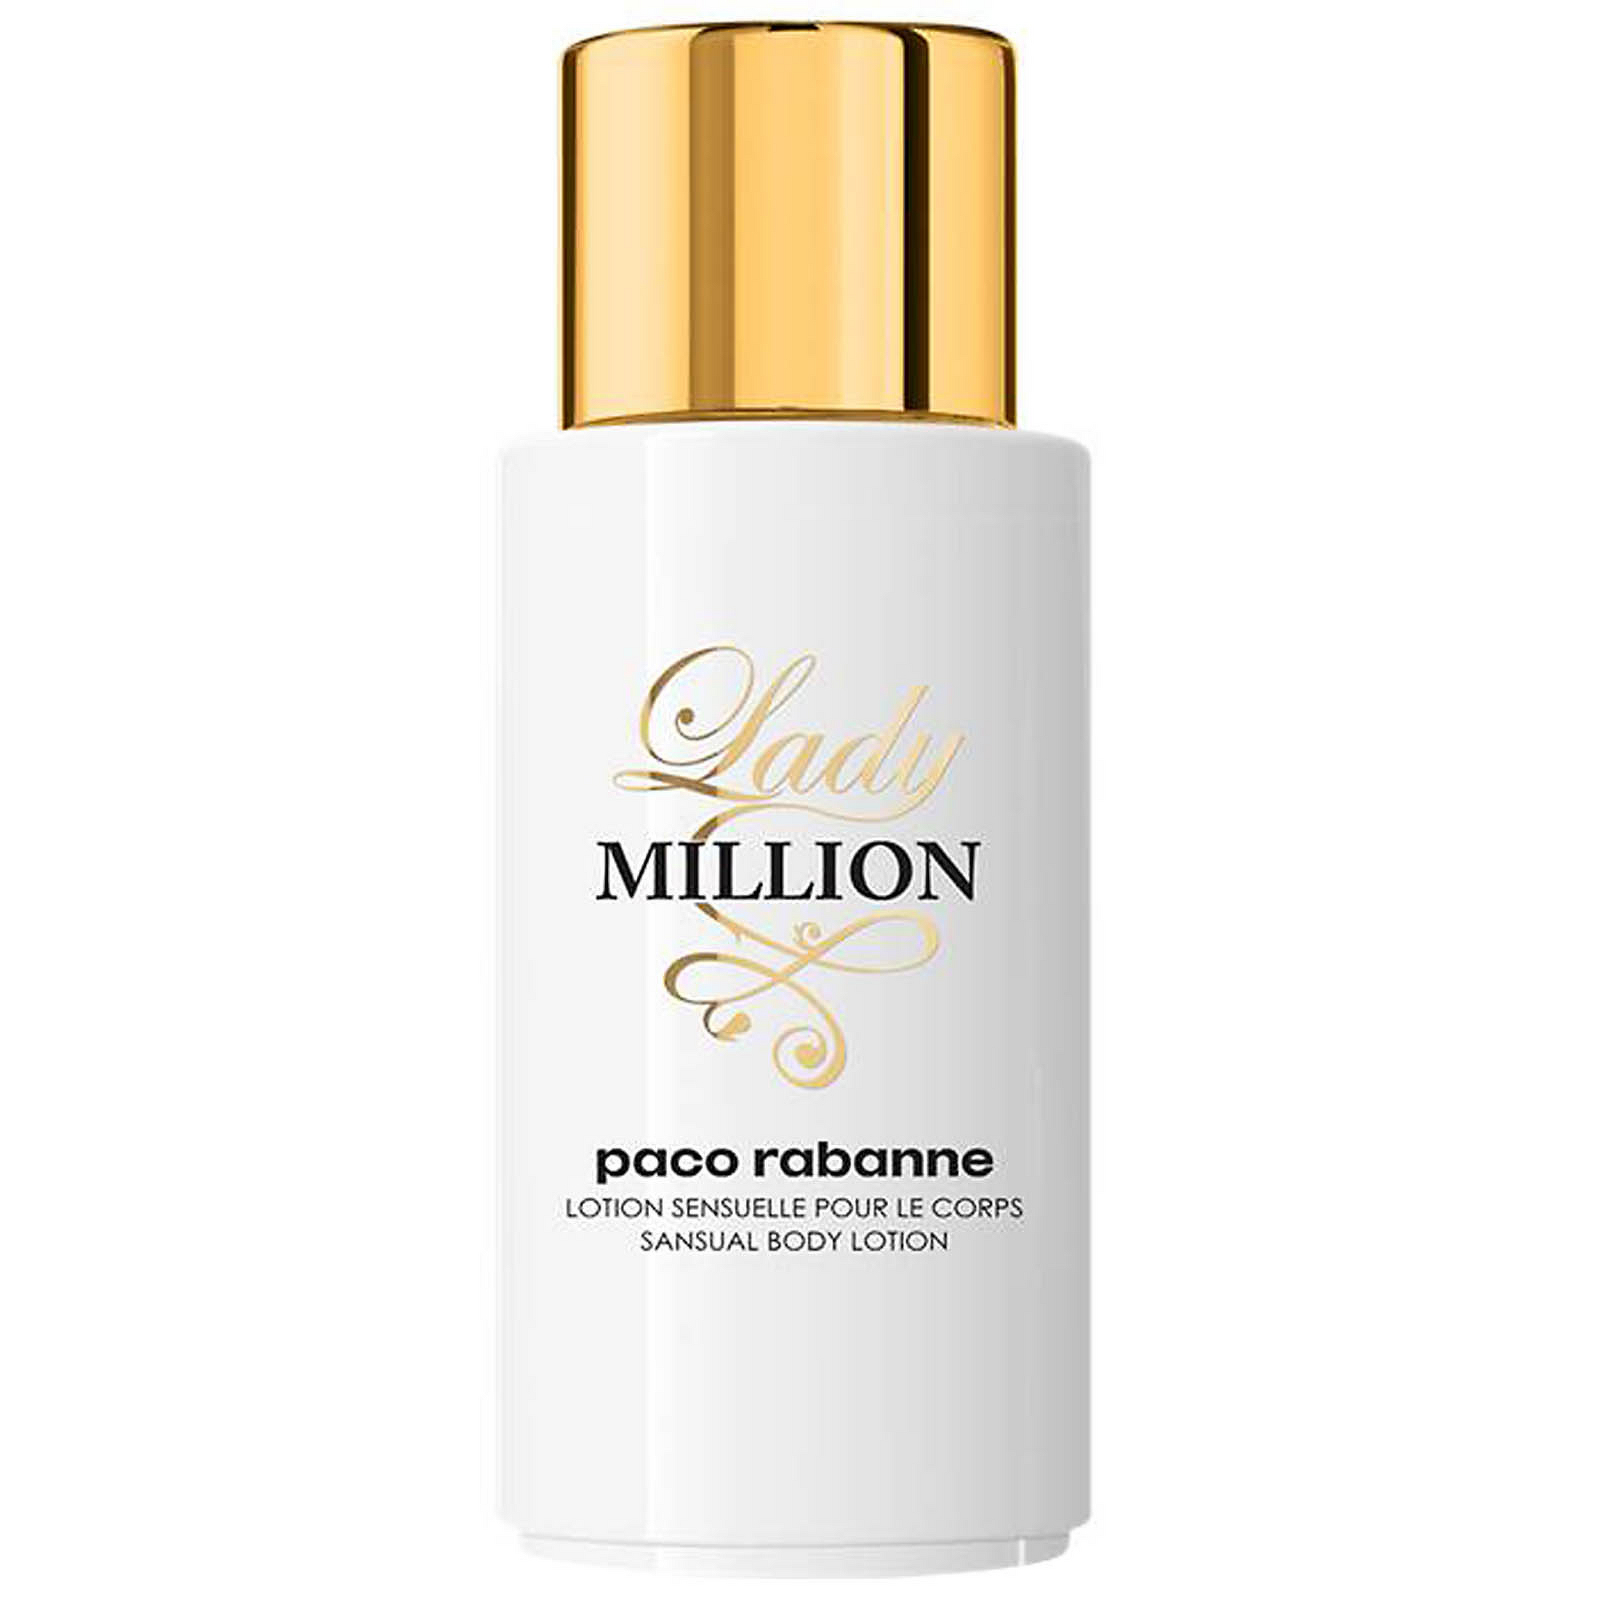 paco rabanne lady million body lotion 200ml